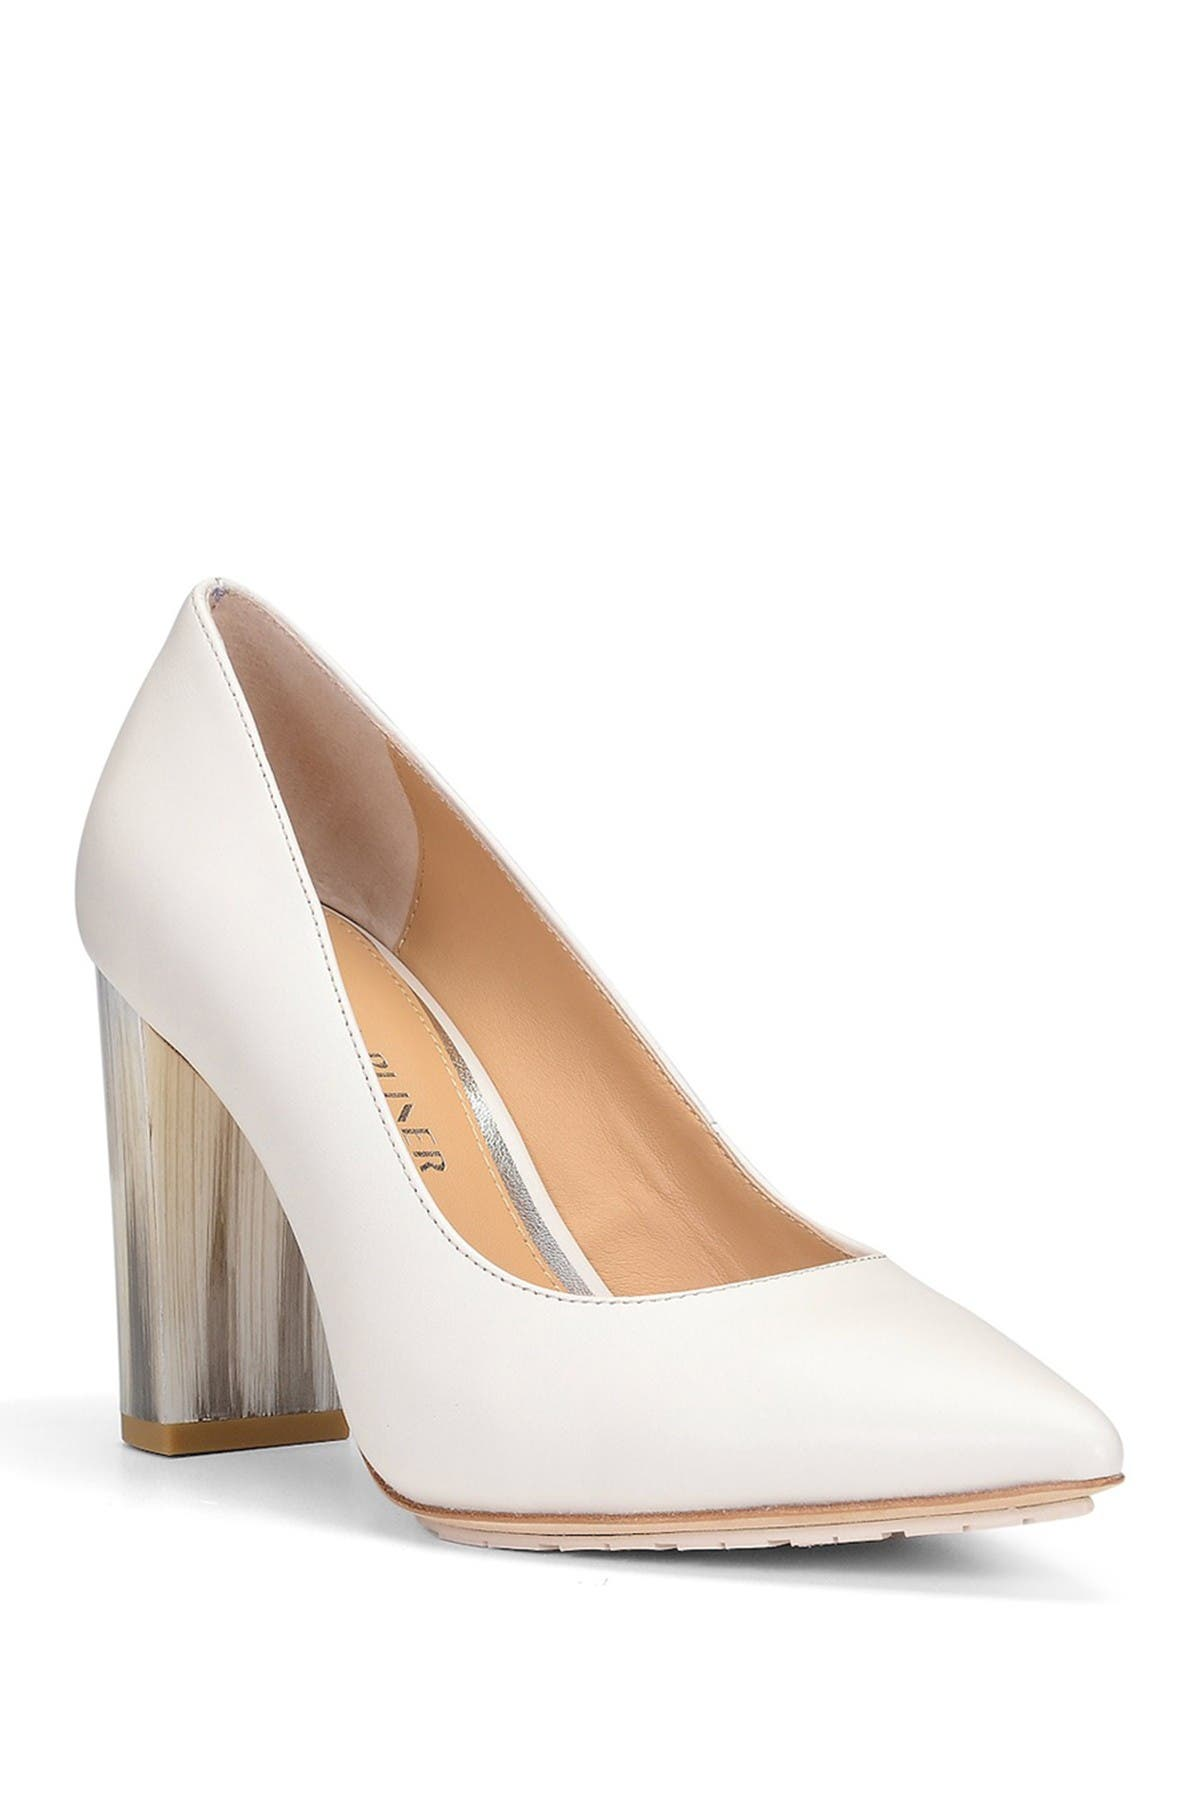 Image of Donald Pliner Neal Leather Block Heel Pump